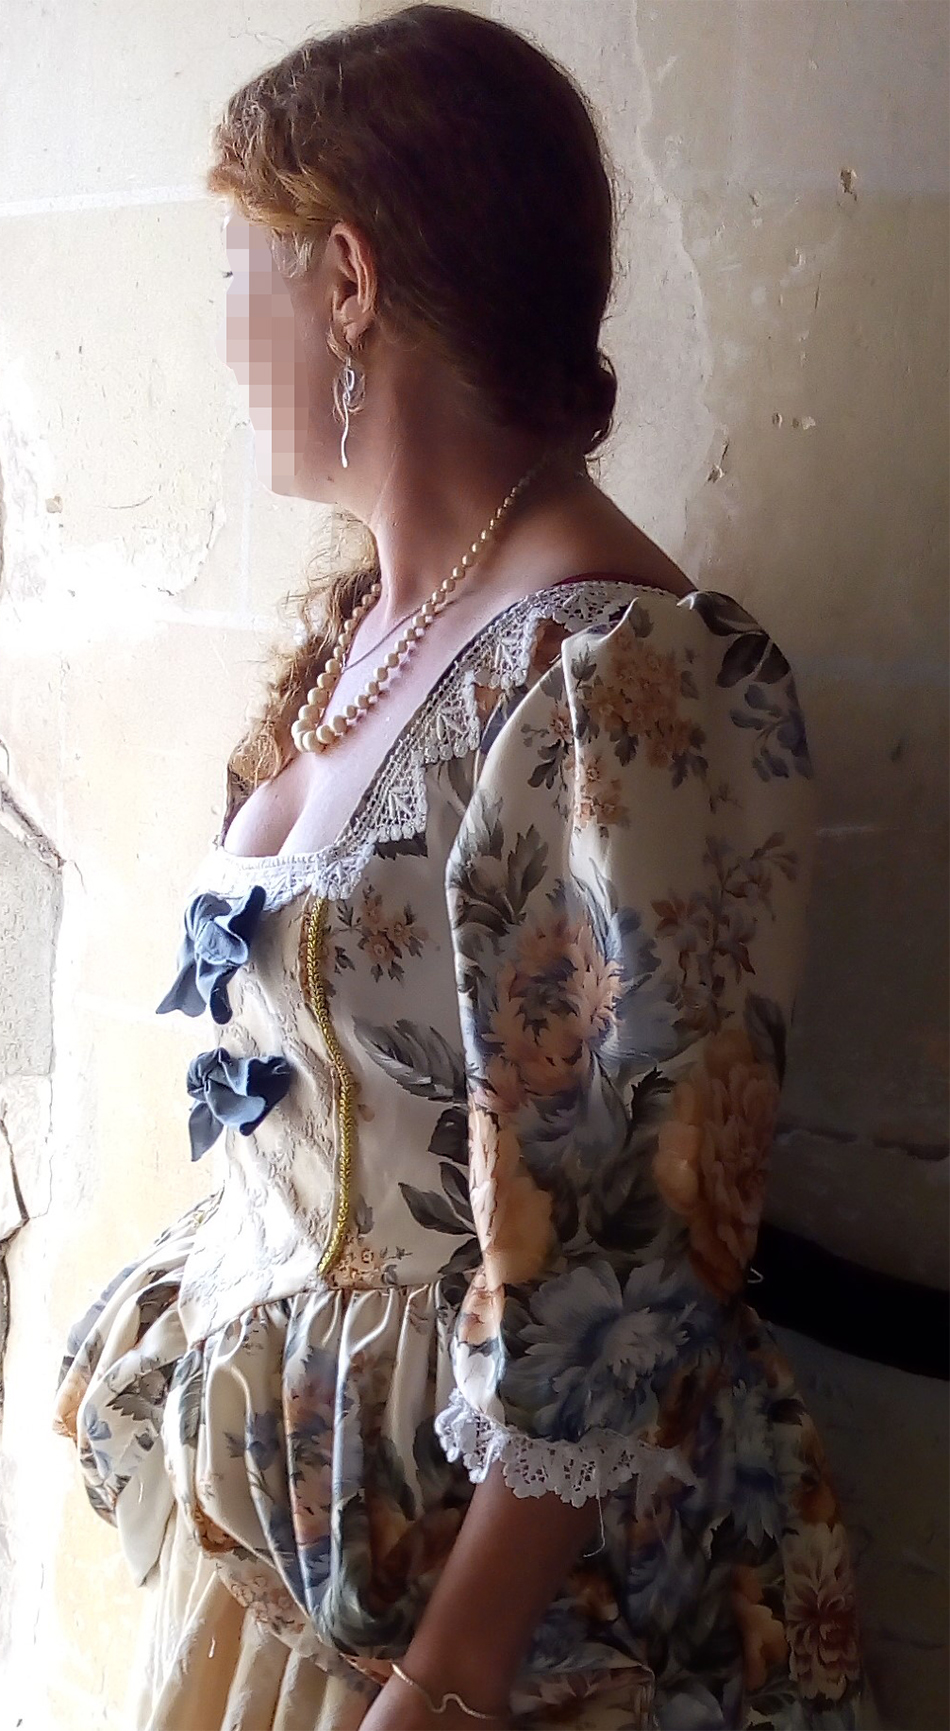 Detail of the Marchioness of Marmande's costume